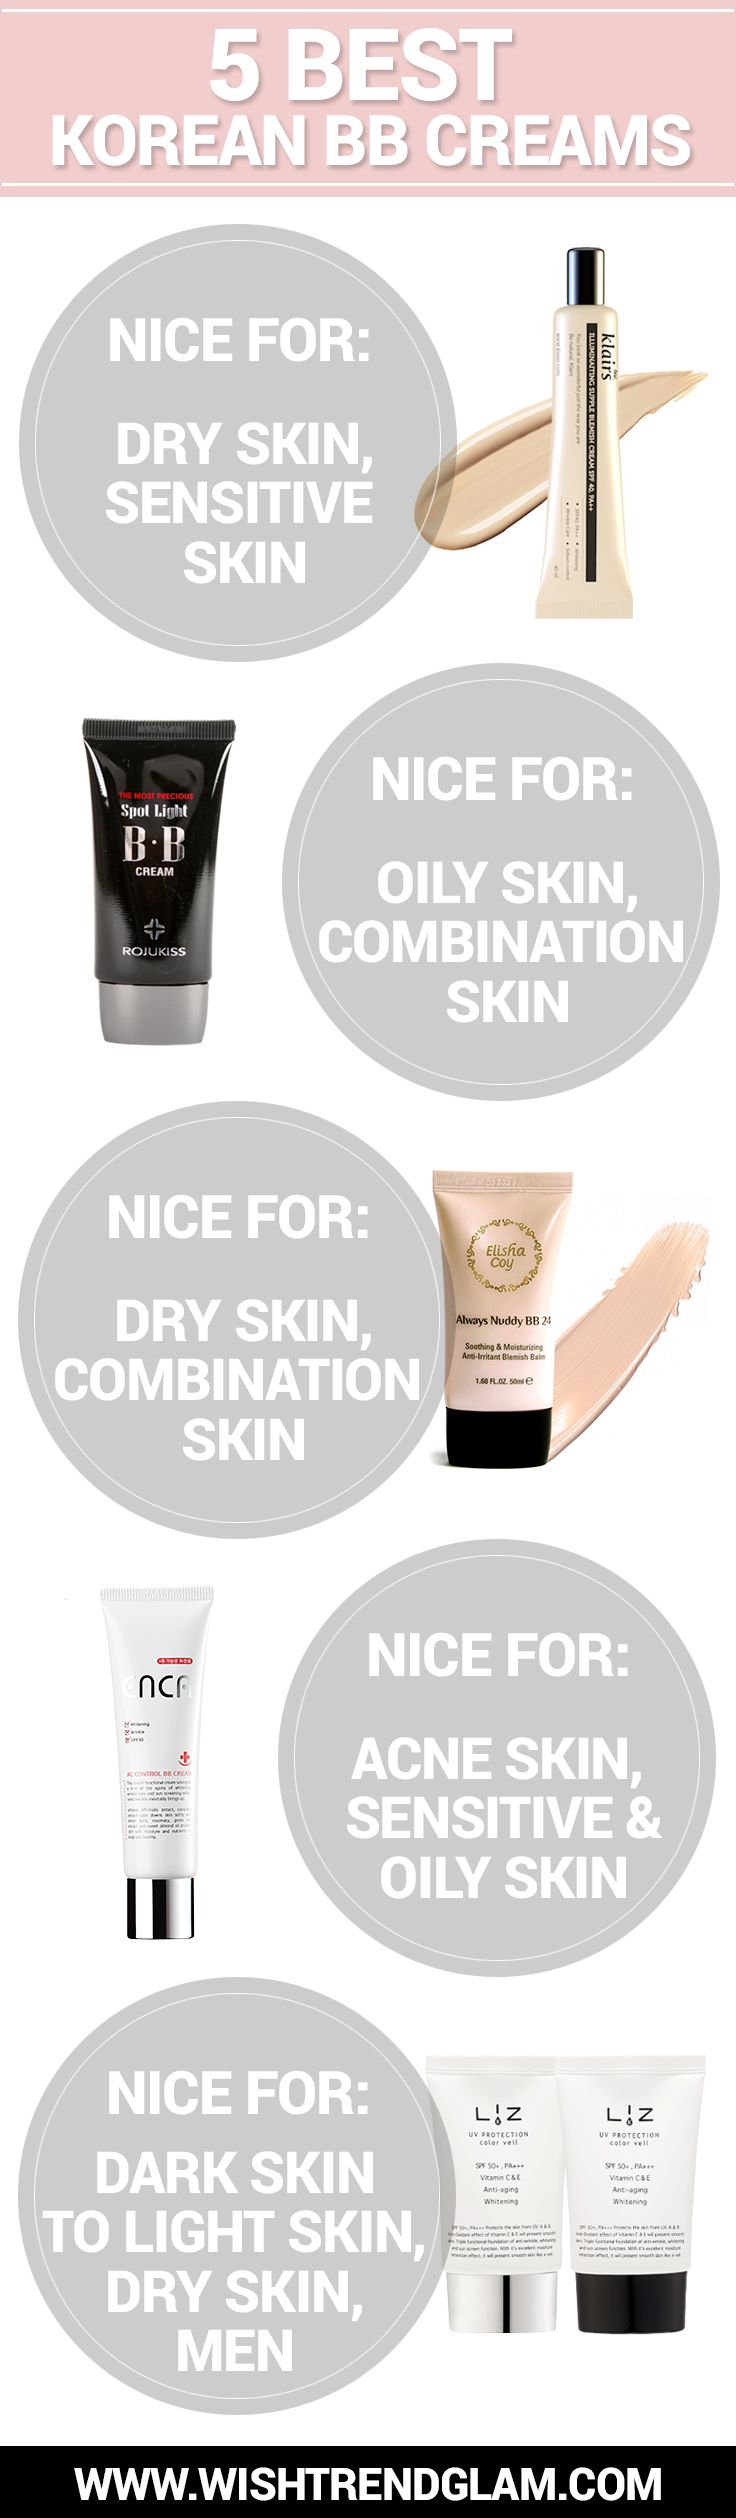 What is BB cream? If you look for Best BB cream, Make sure to check this article. We recommend 5 best Korean BB creams that suitable for your skin type.  More > http://www.wishtrend.com/glam/what-is-bb-cream/